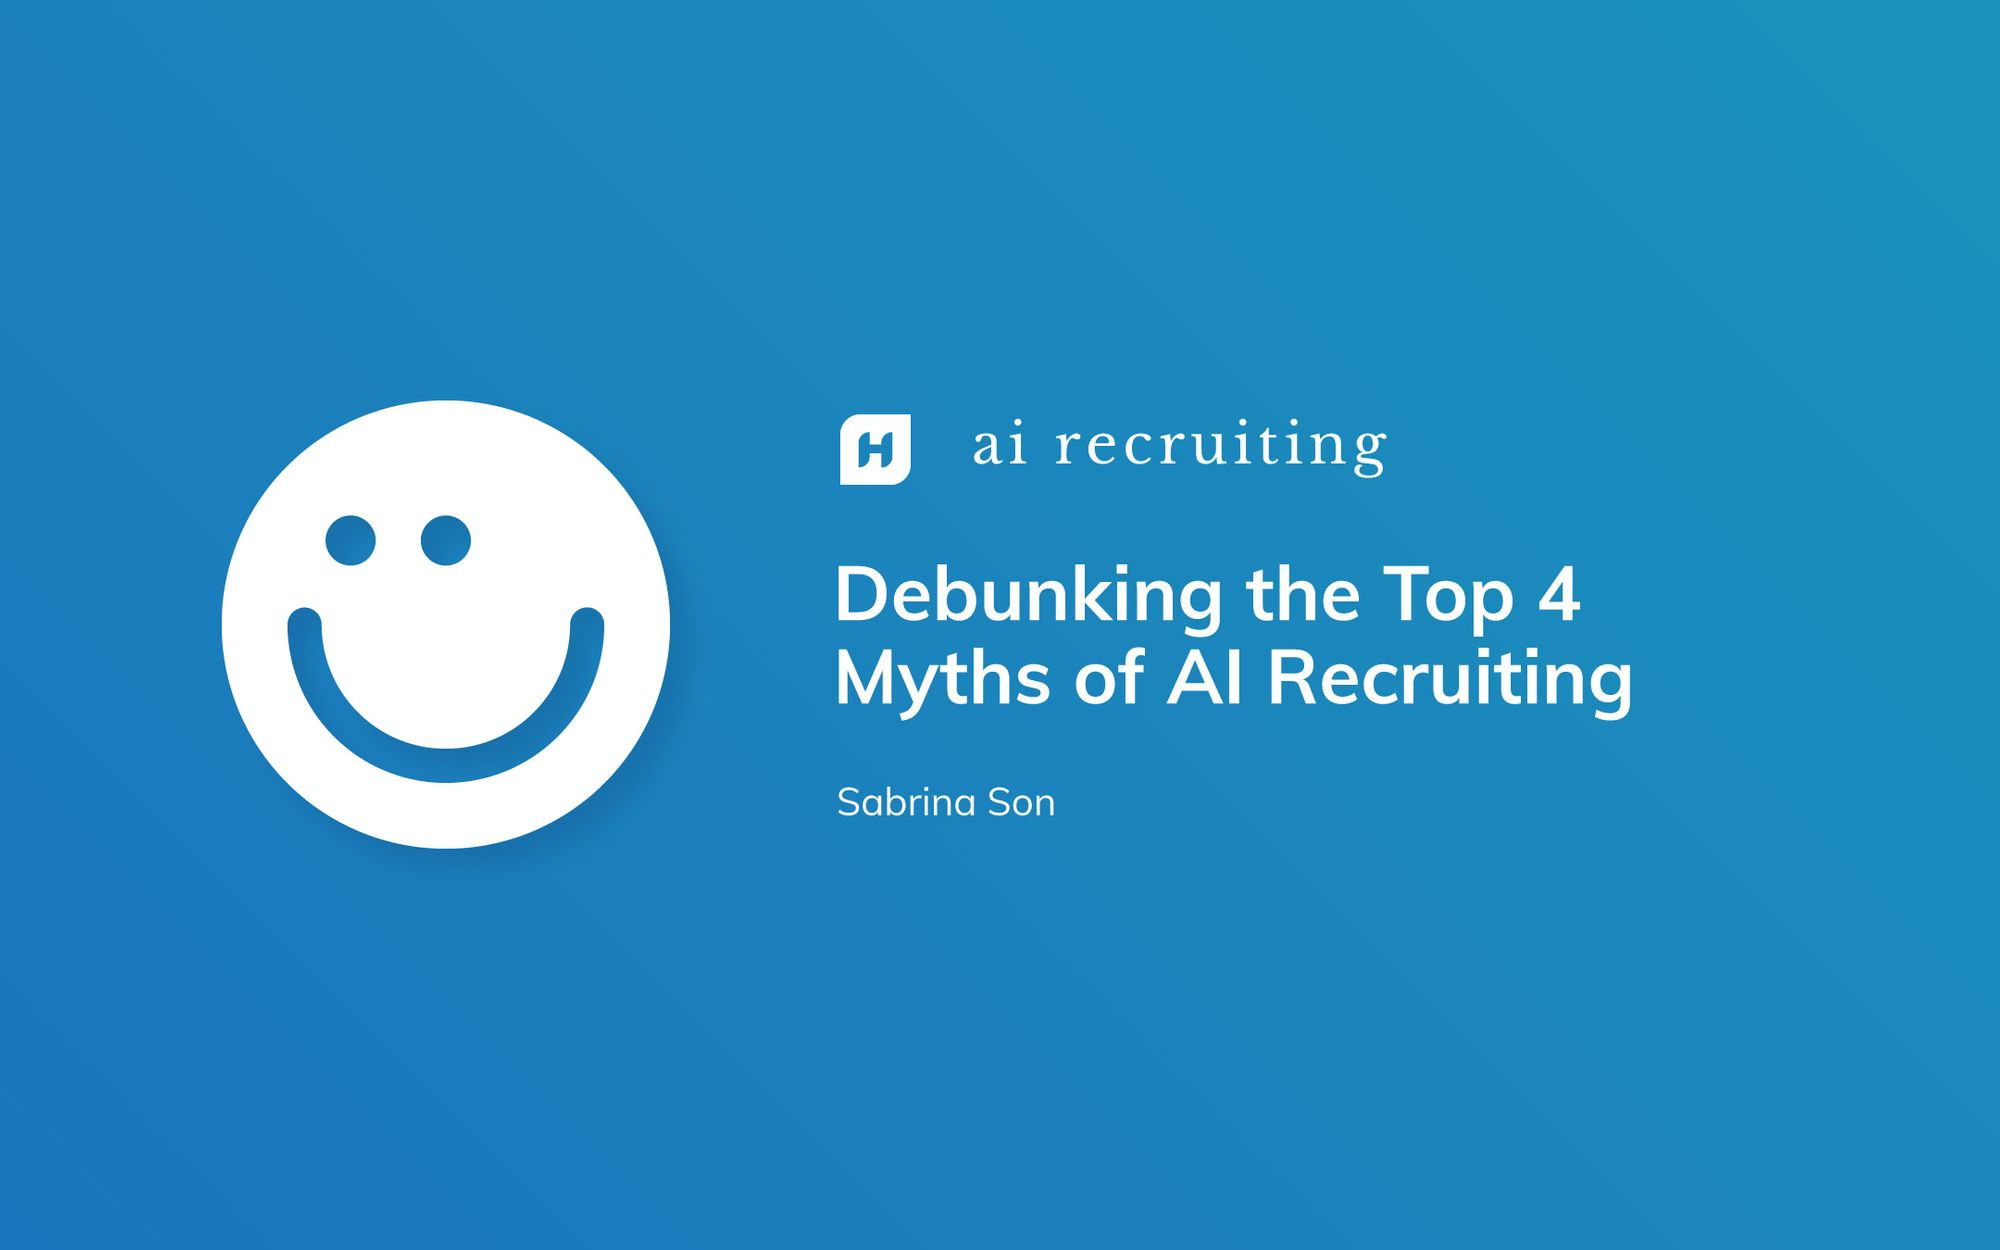 Debunking the Top 4 Myths of AI Recruiting